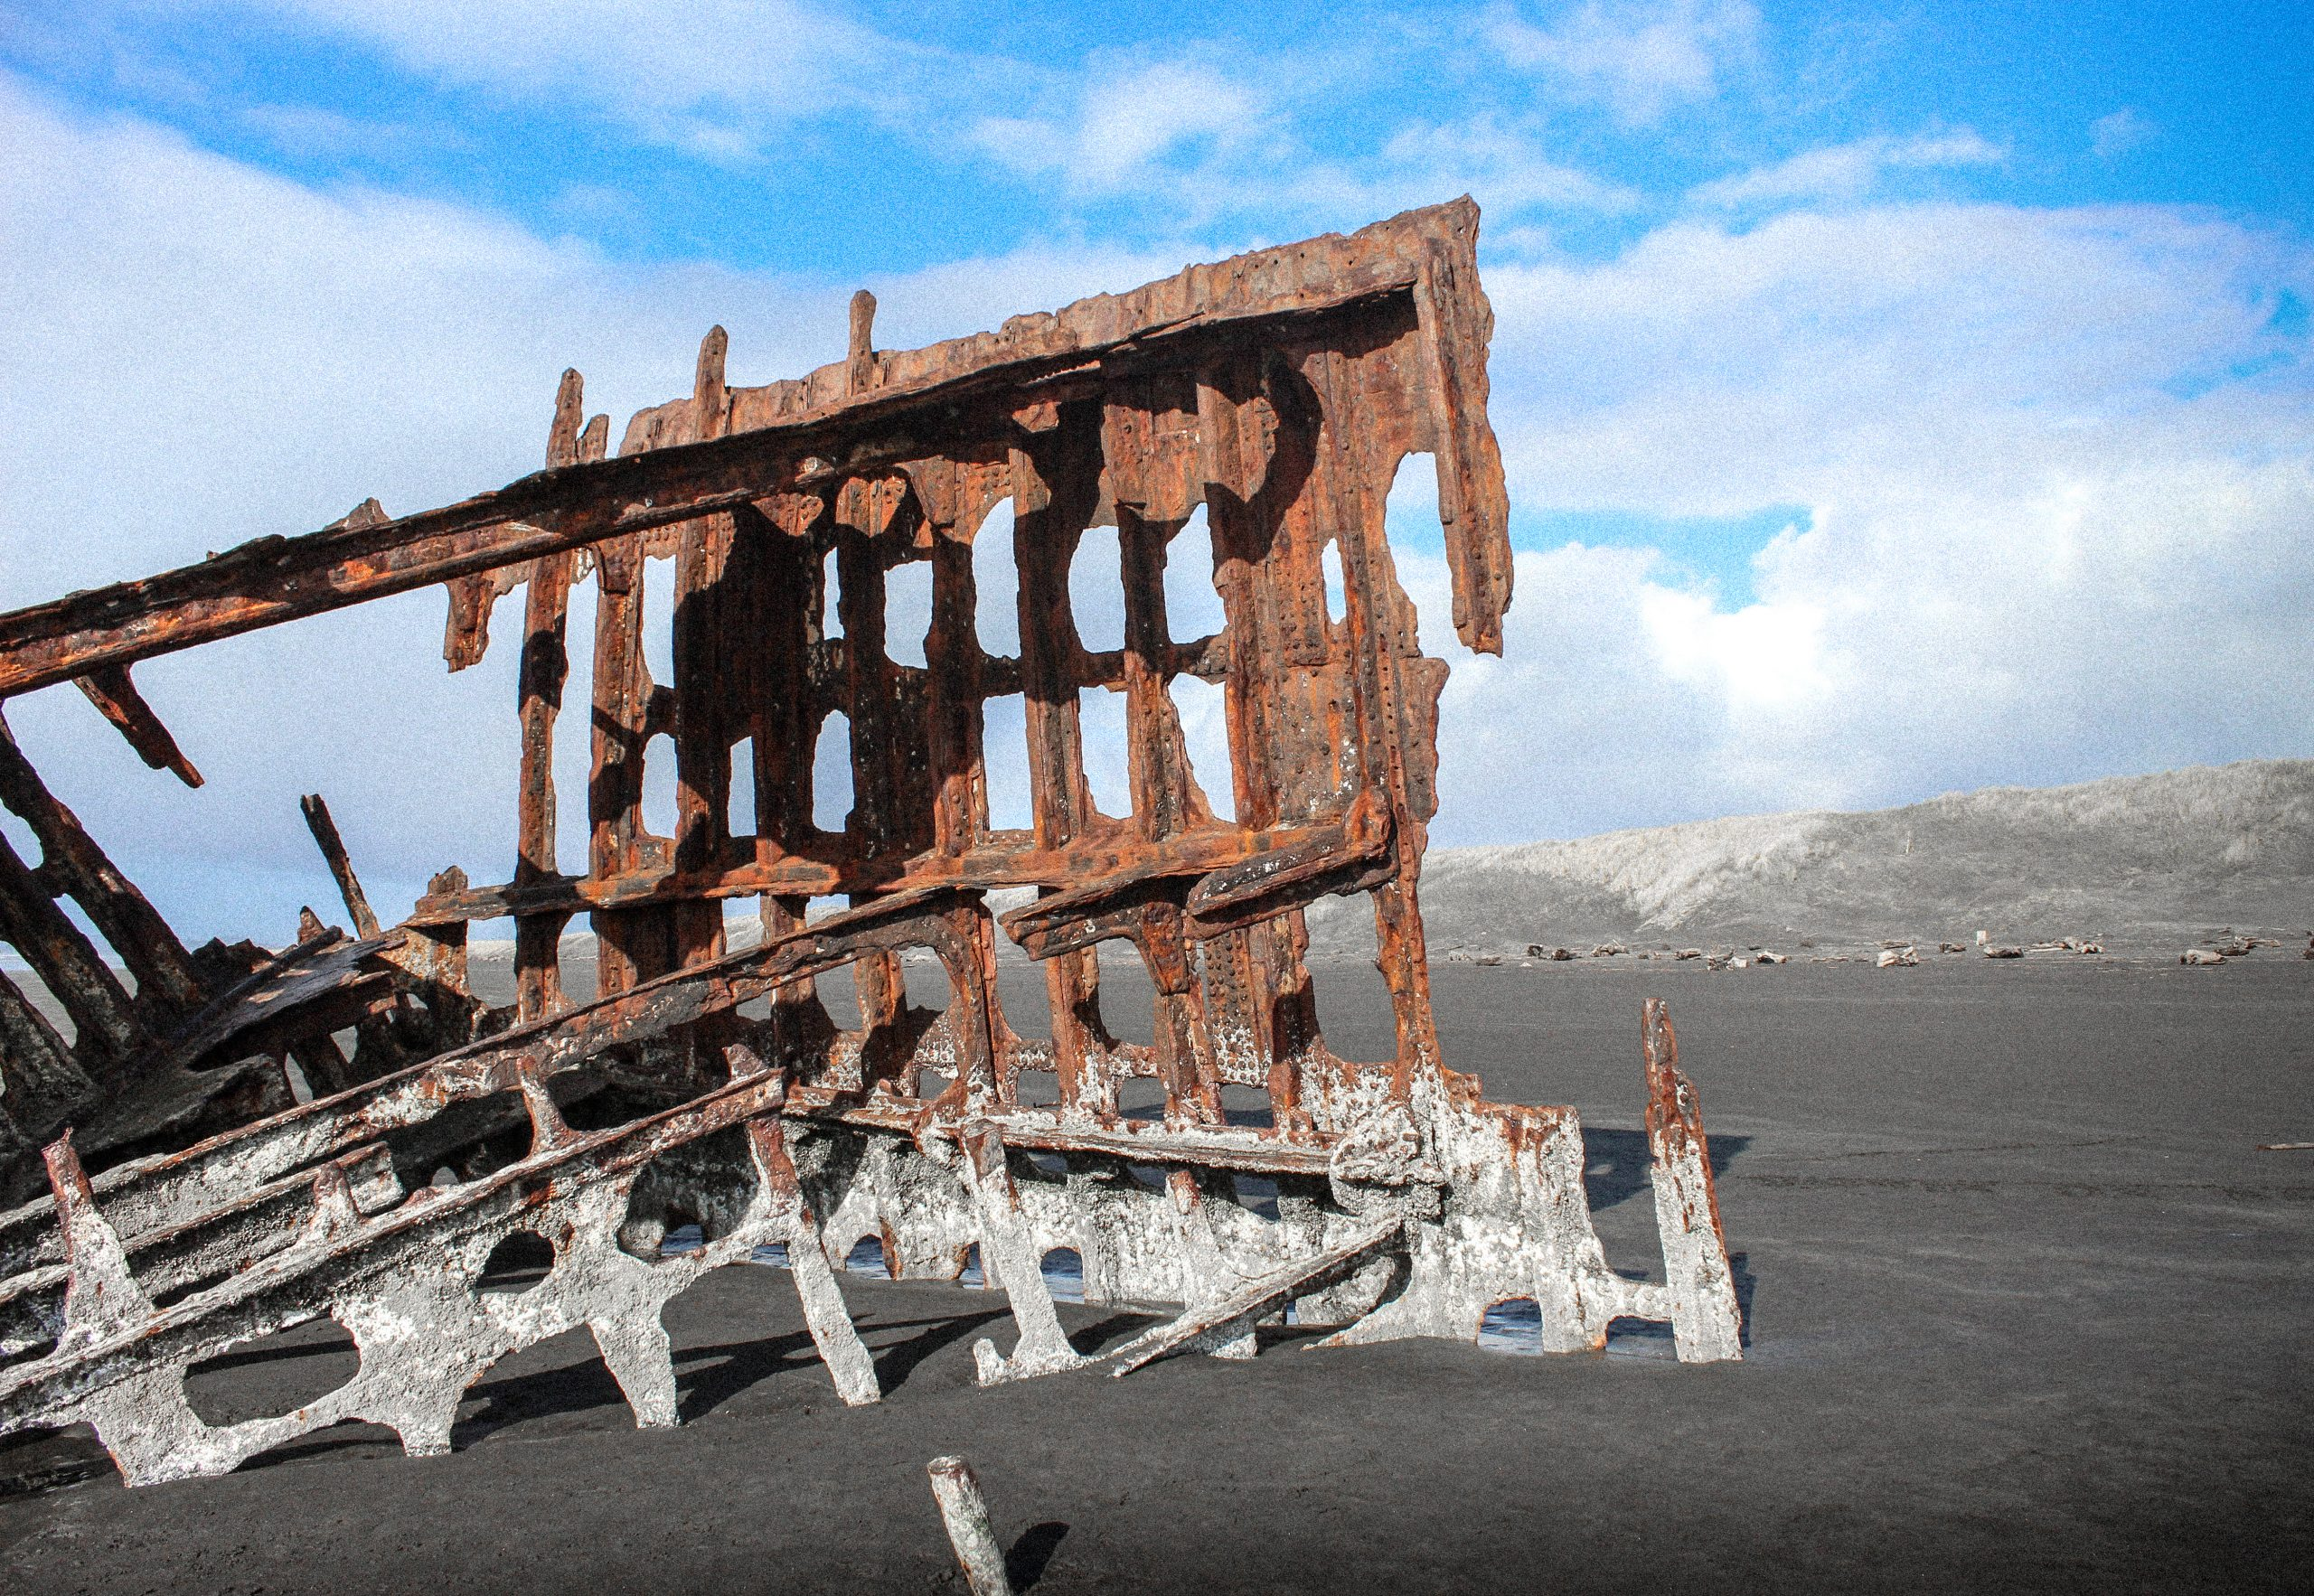 Shopwreck of Peter Iredale